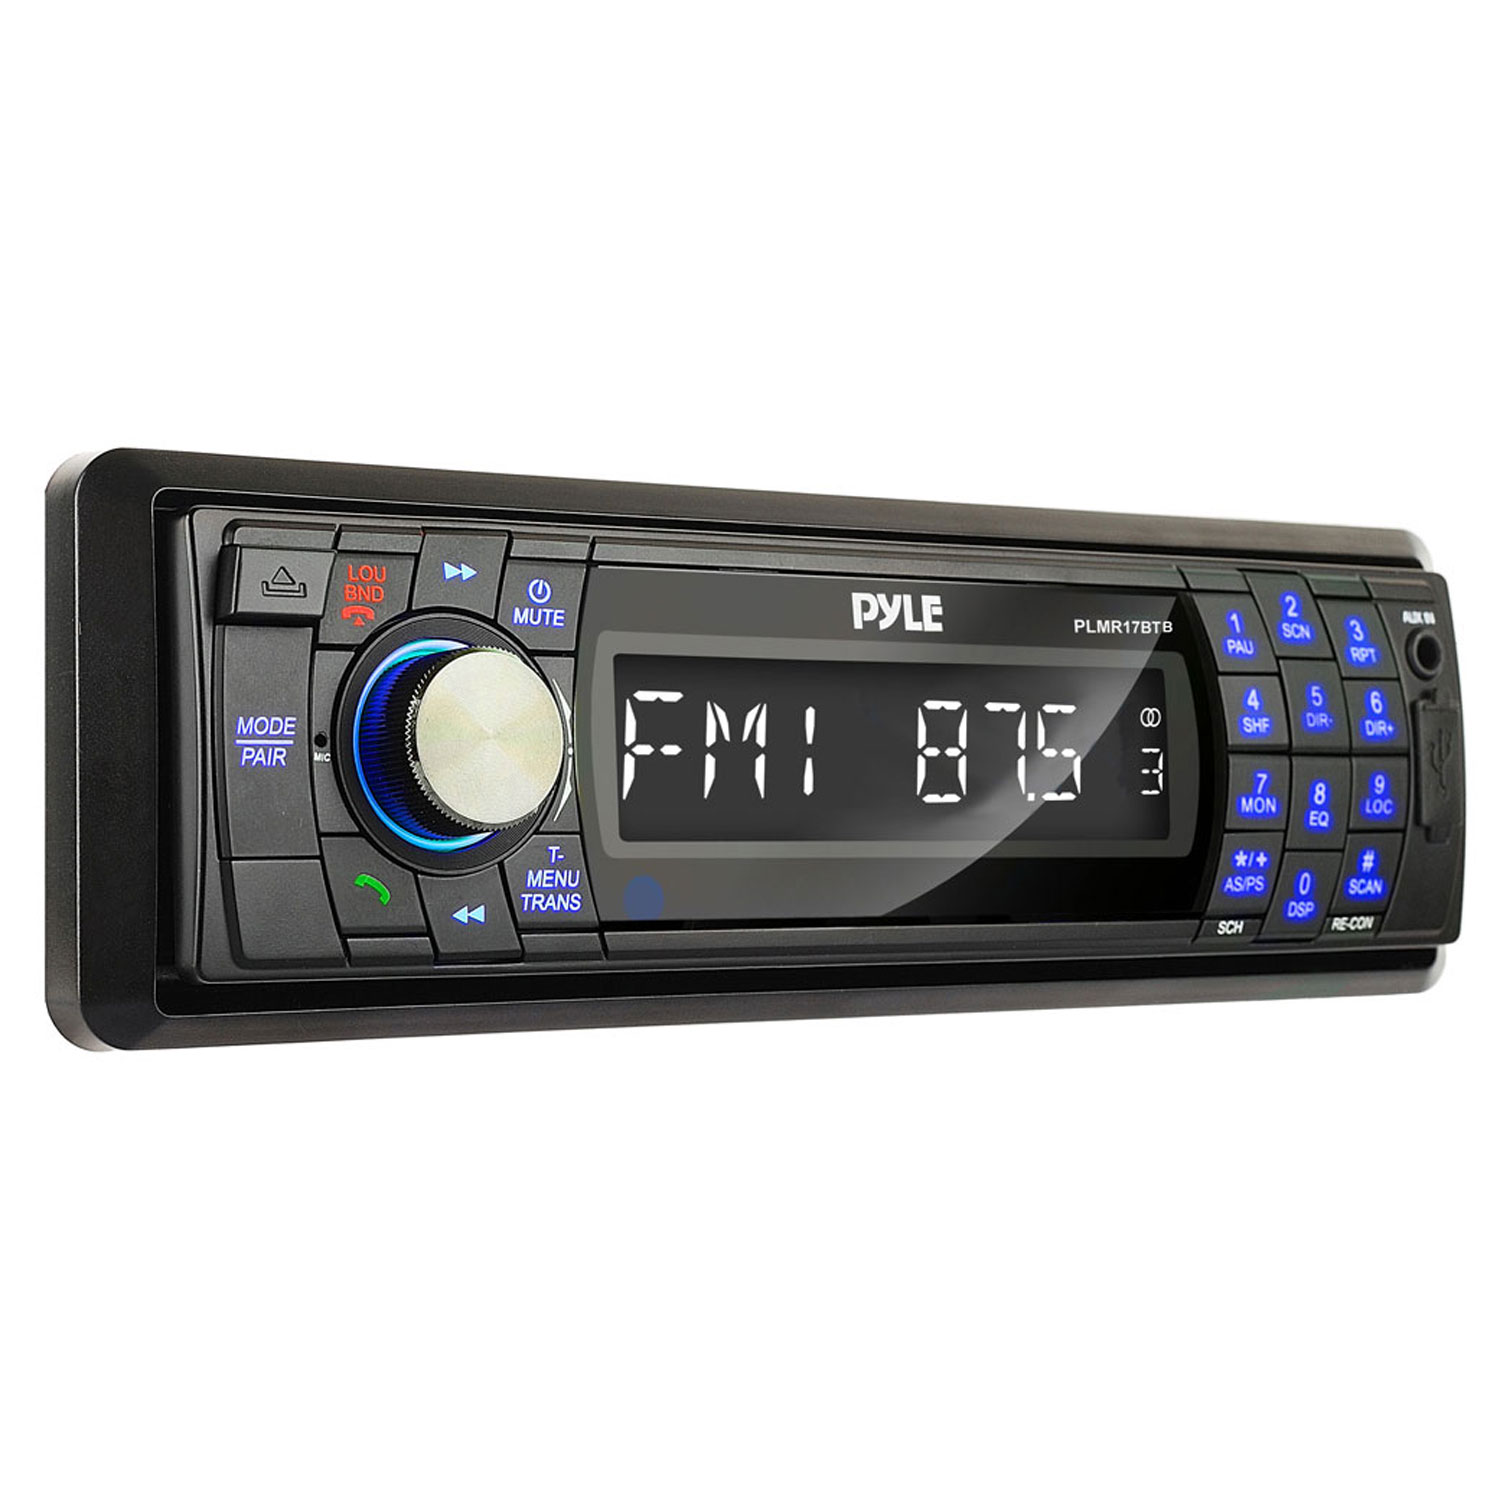 PYLE PLMR17BTB - Bluetooth Marine Stereo Radio - Waterproof/Weather proof Single DIN 12v Boat Receiver with Digital LCD, RCA, MP3 / USB Reader, AM FM Radio - Wiring Harness, Remote Control - (Black)